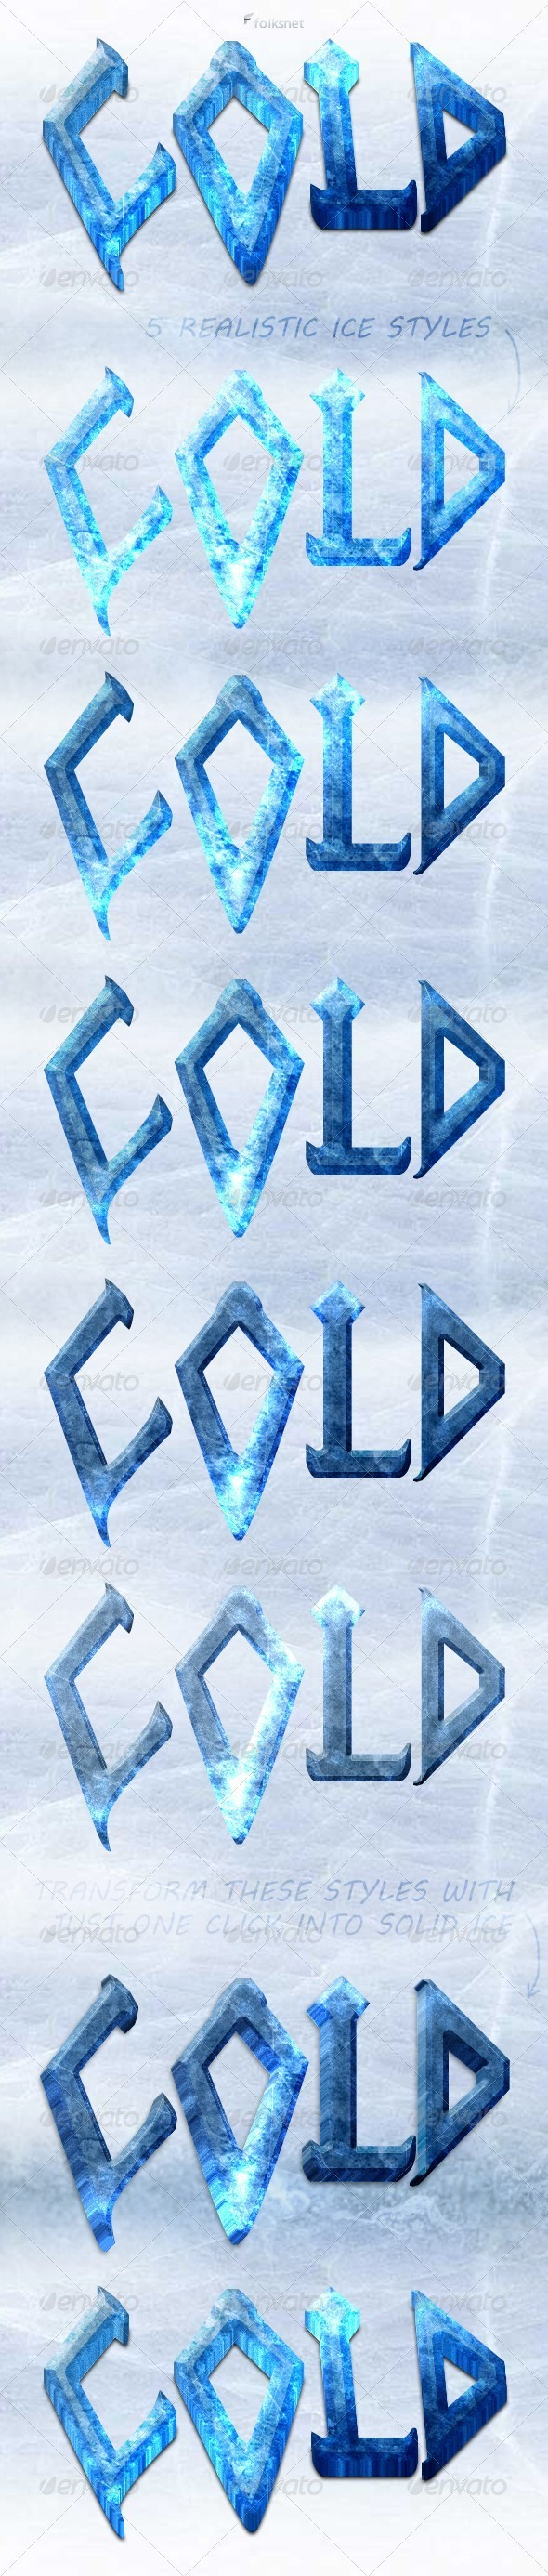 GraphicRiver 3D Ice Styles 370523